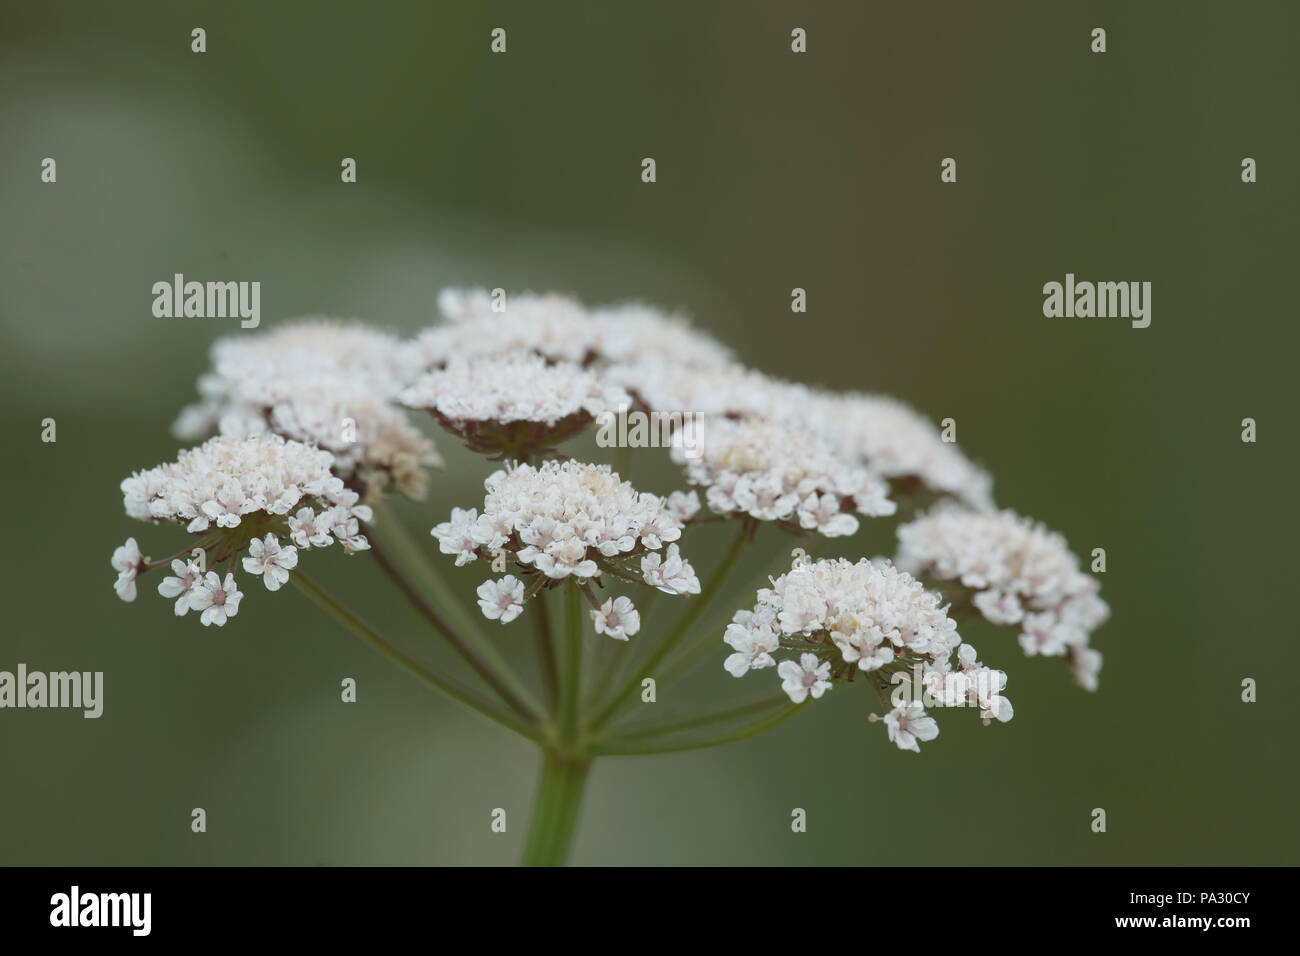 Oenanthe lachenalii (Parsley Water-dropwort) Stock Photo